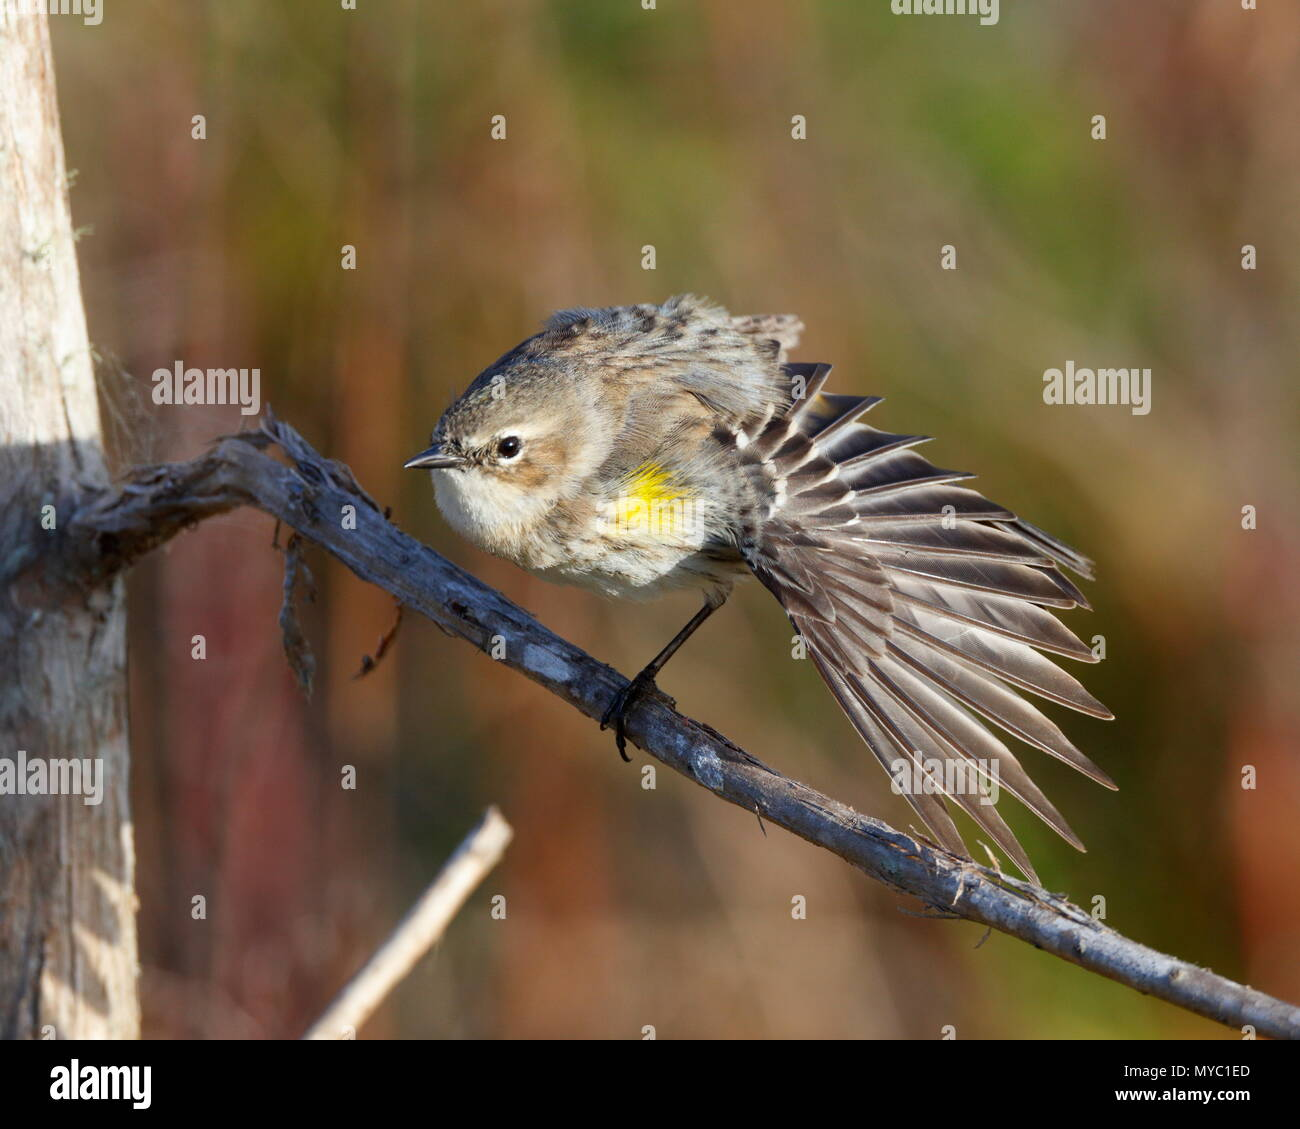 A yellow-rumped warbler, Setophaga coronata, forages for insects. - Stock Image